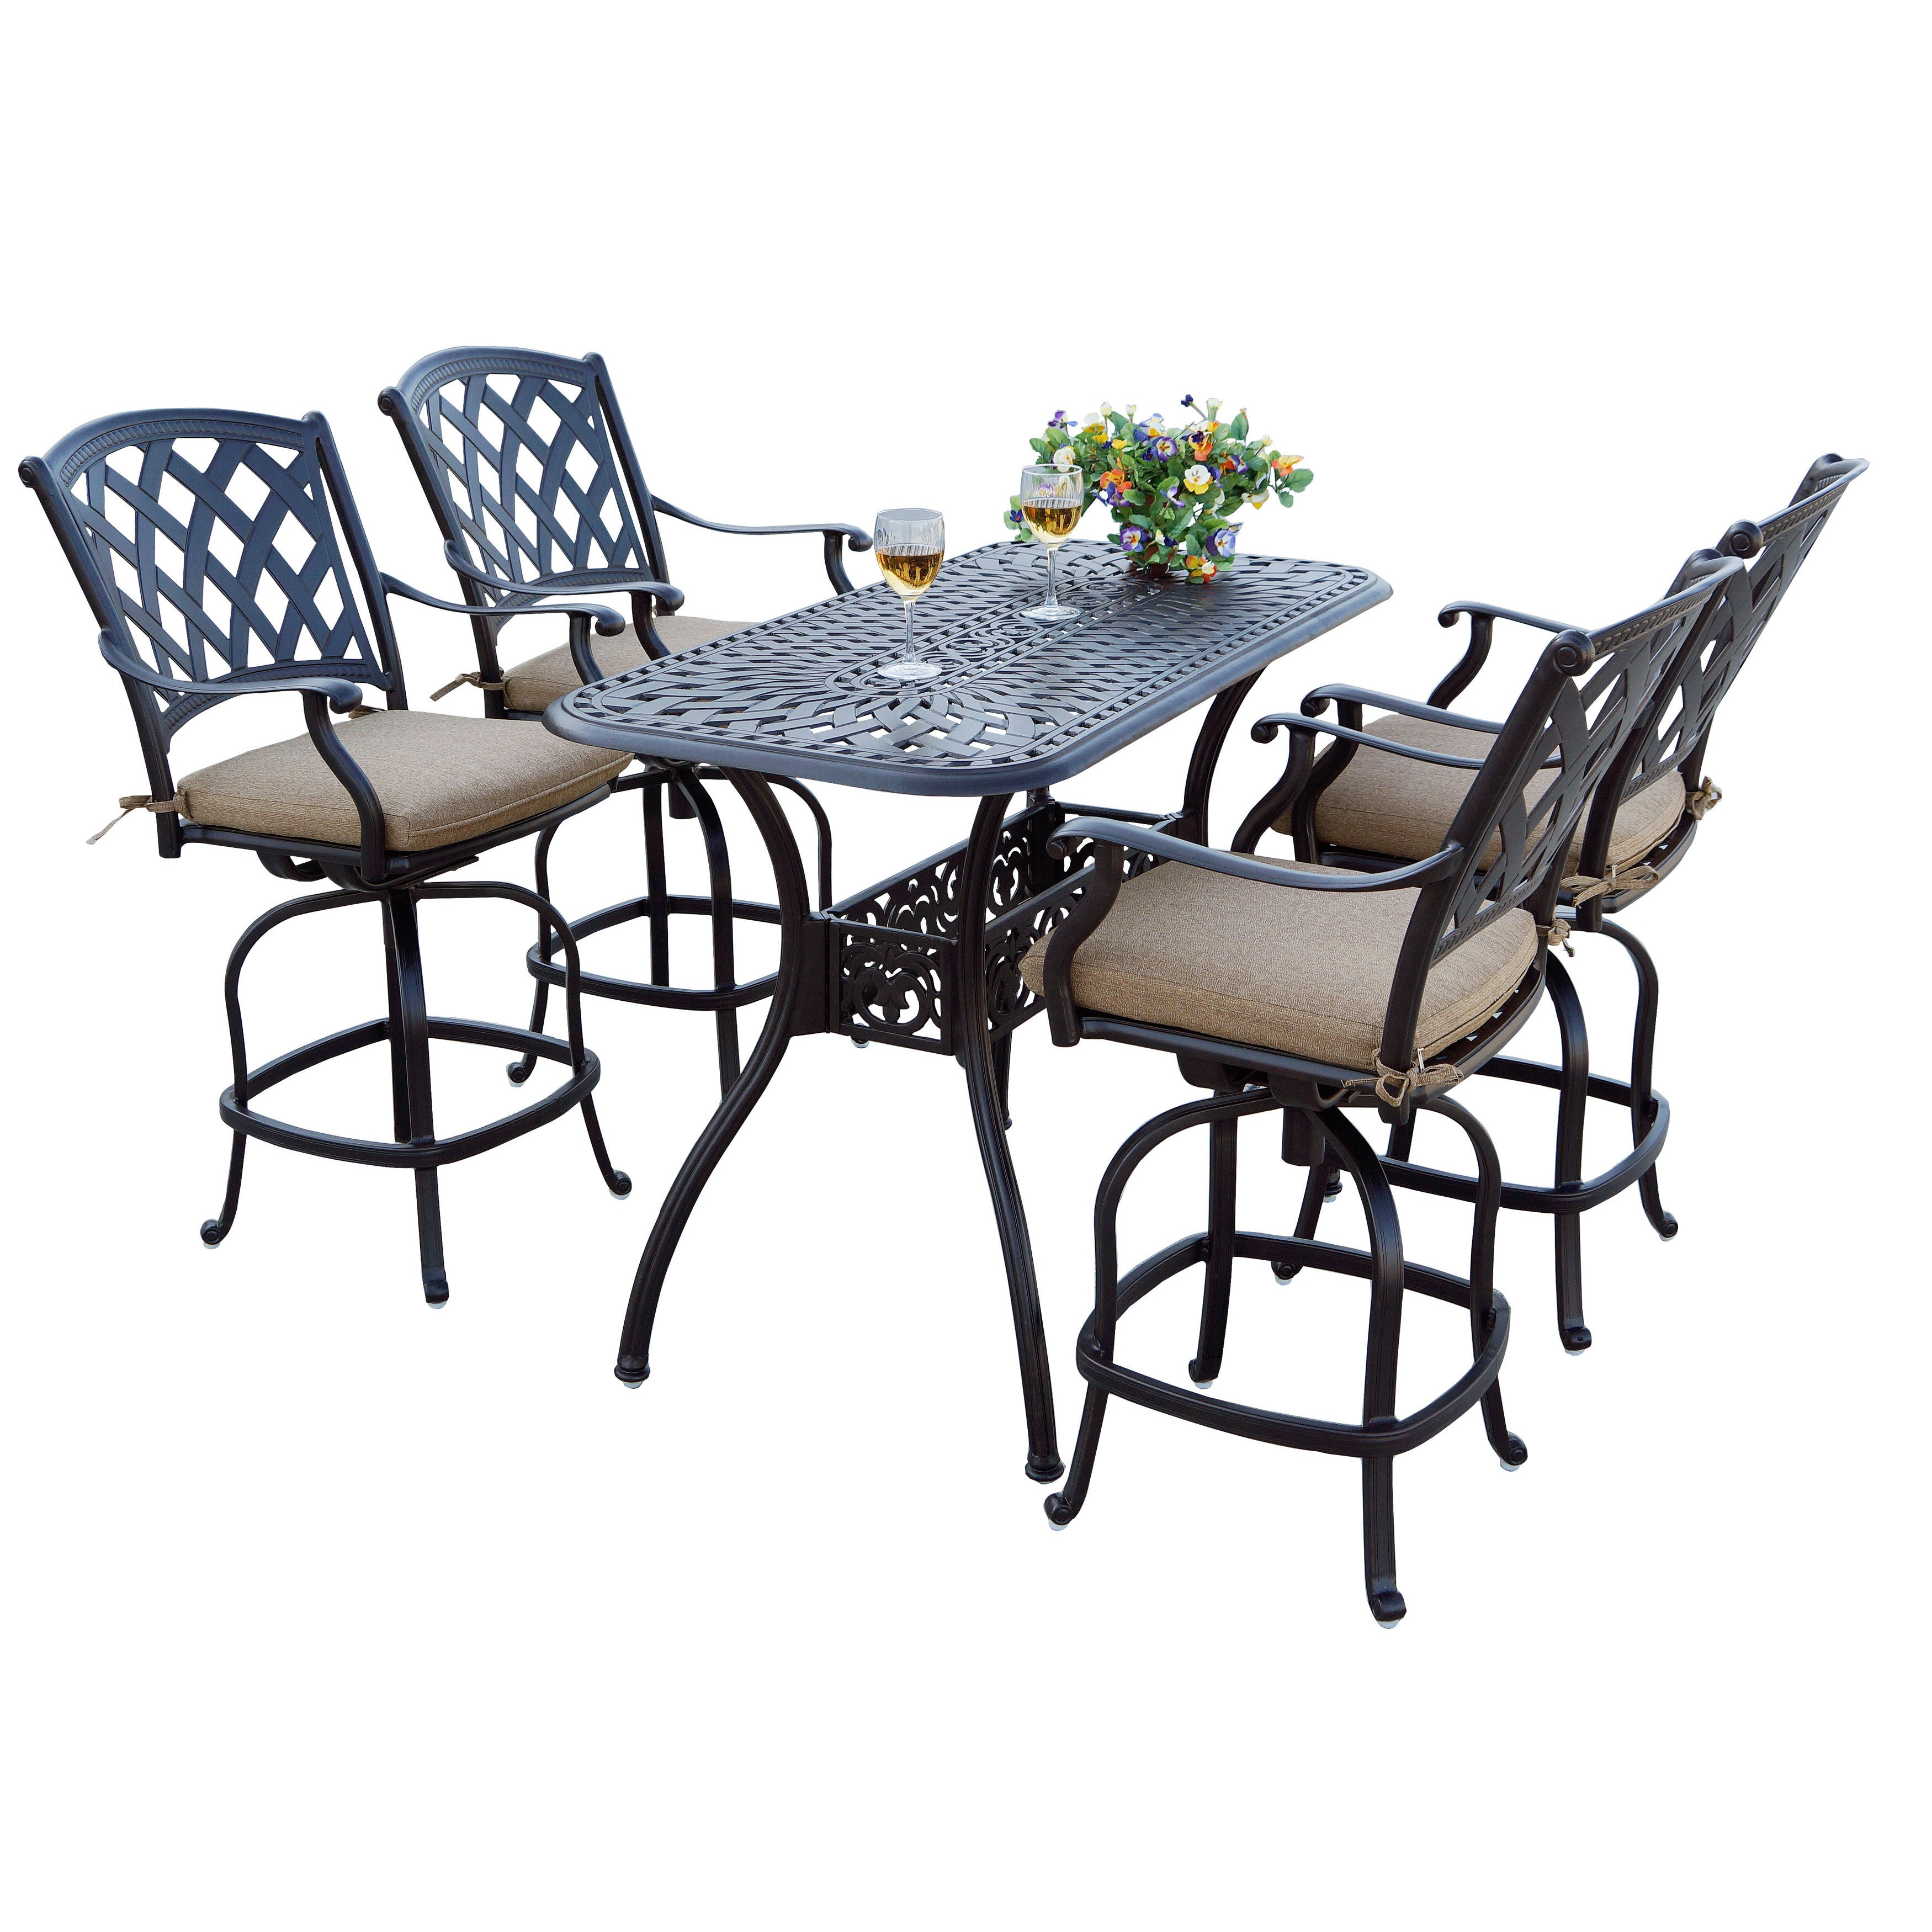 Darlee ocean view antique bronze finish cast aluminum 26 inch x 52 inch counter height bar table and 4 chairs antique bronze